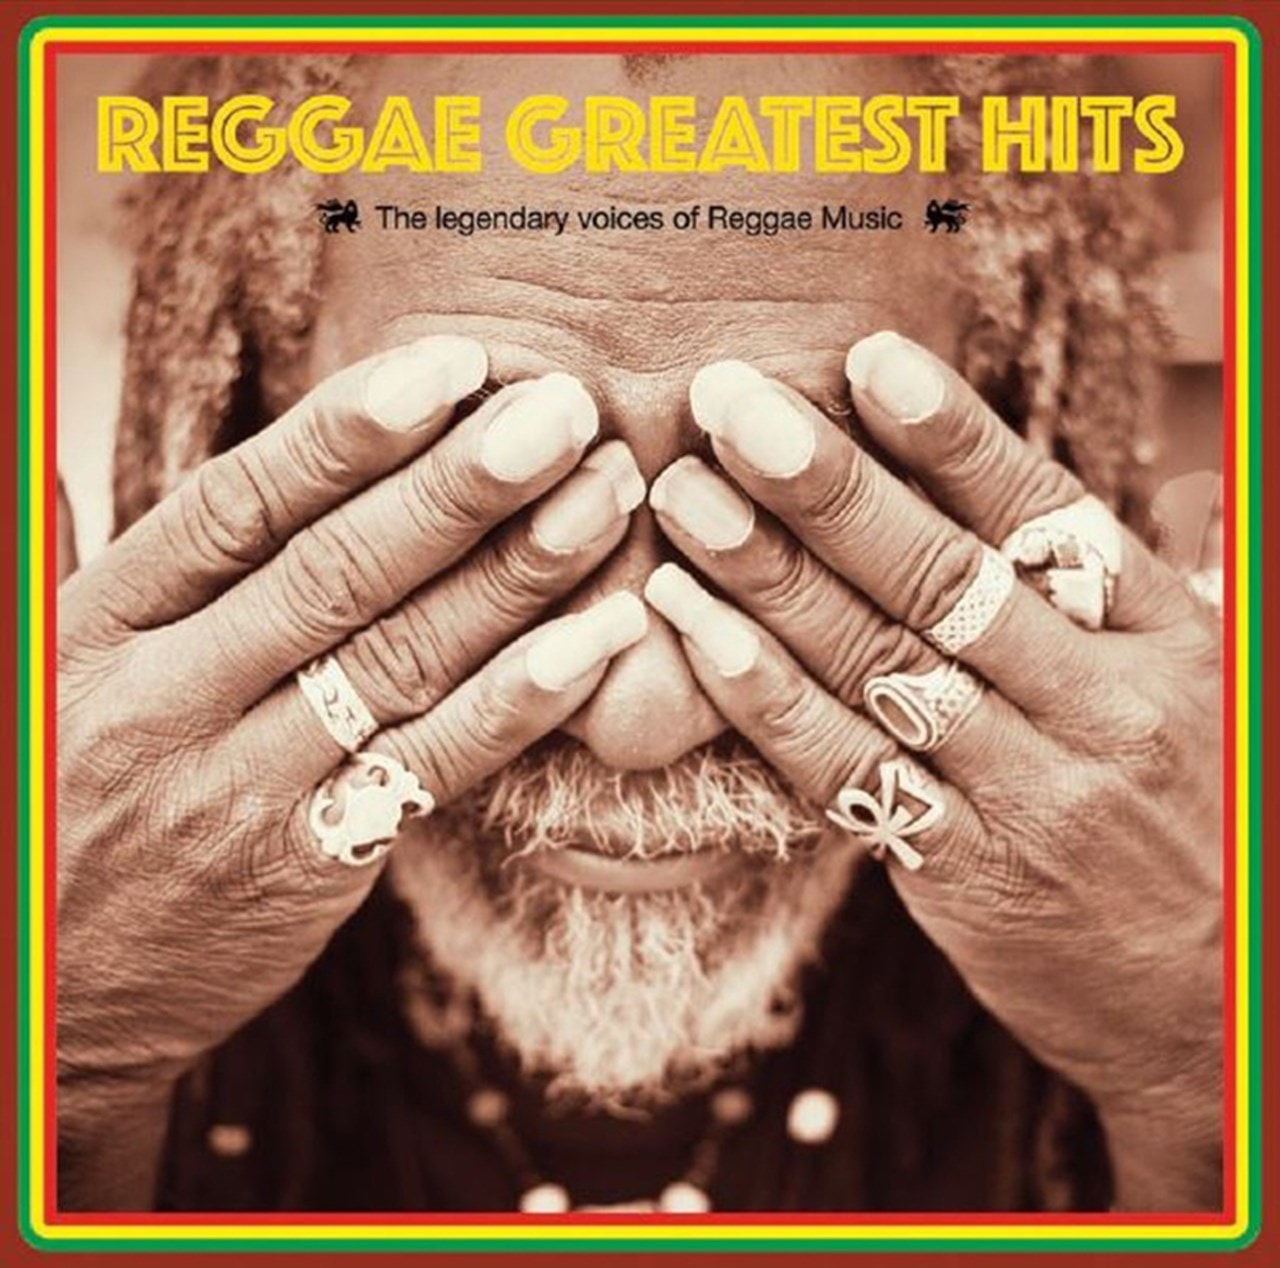 Reggae Greatest Hits: The Legendary Voices of Reggae Music - 1